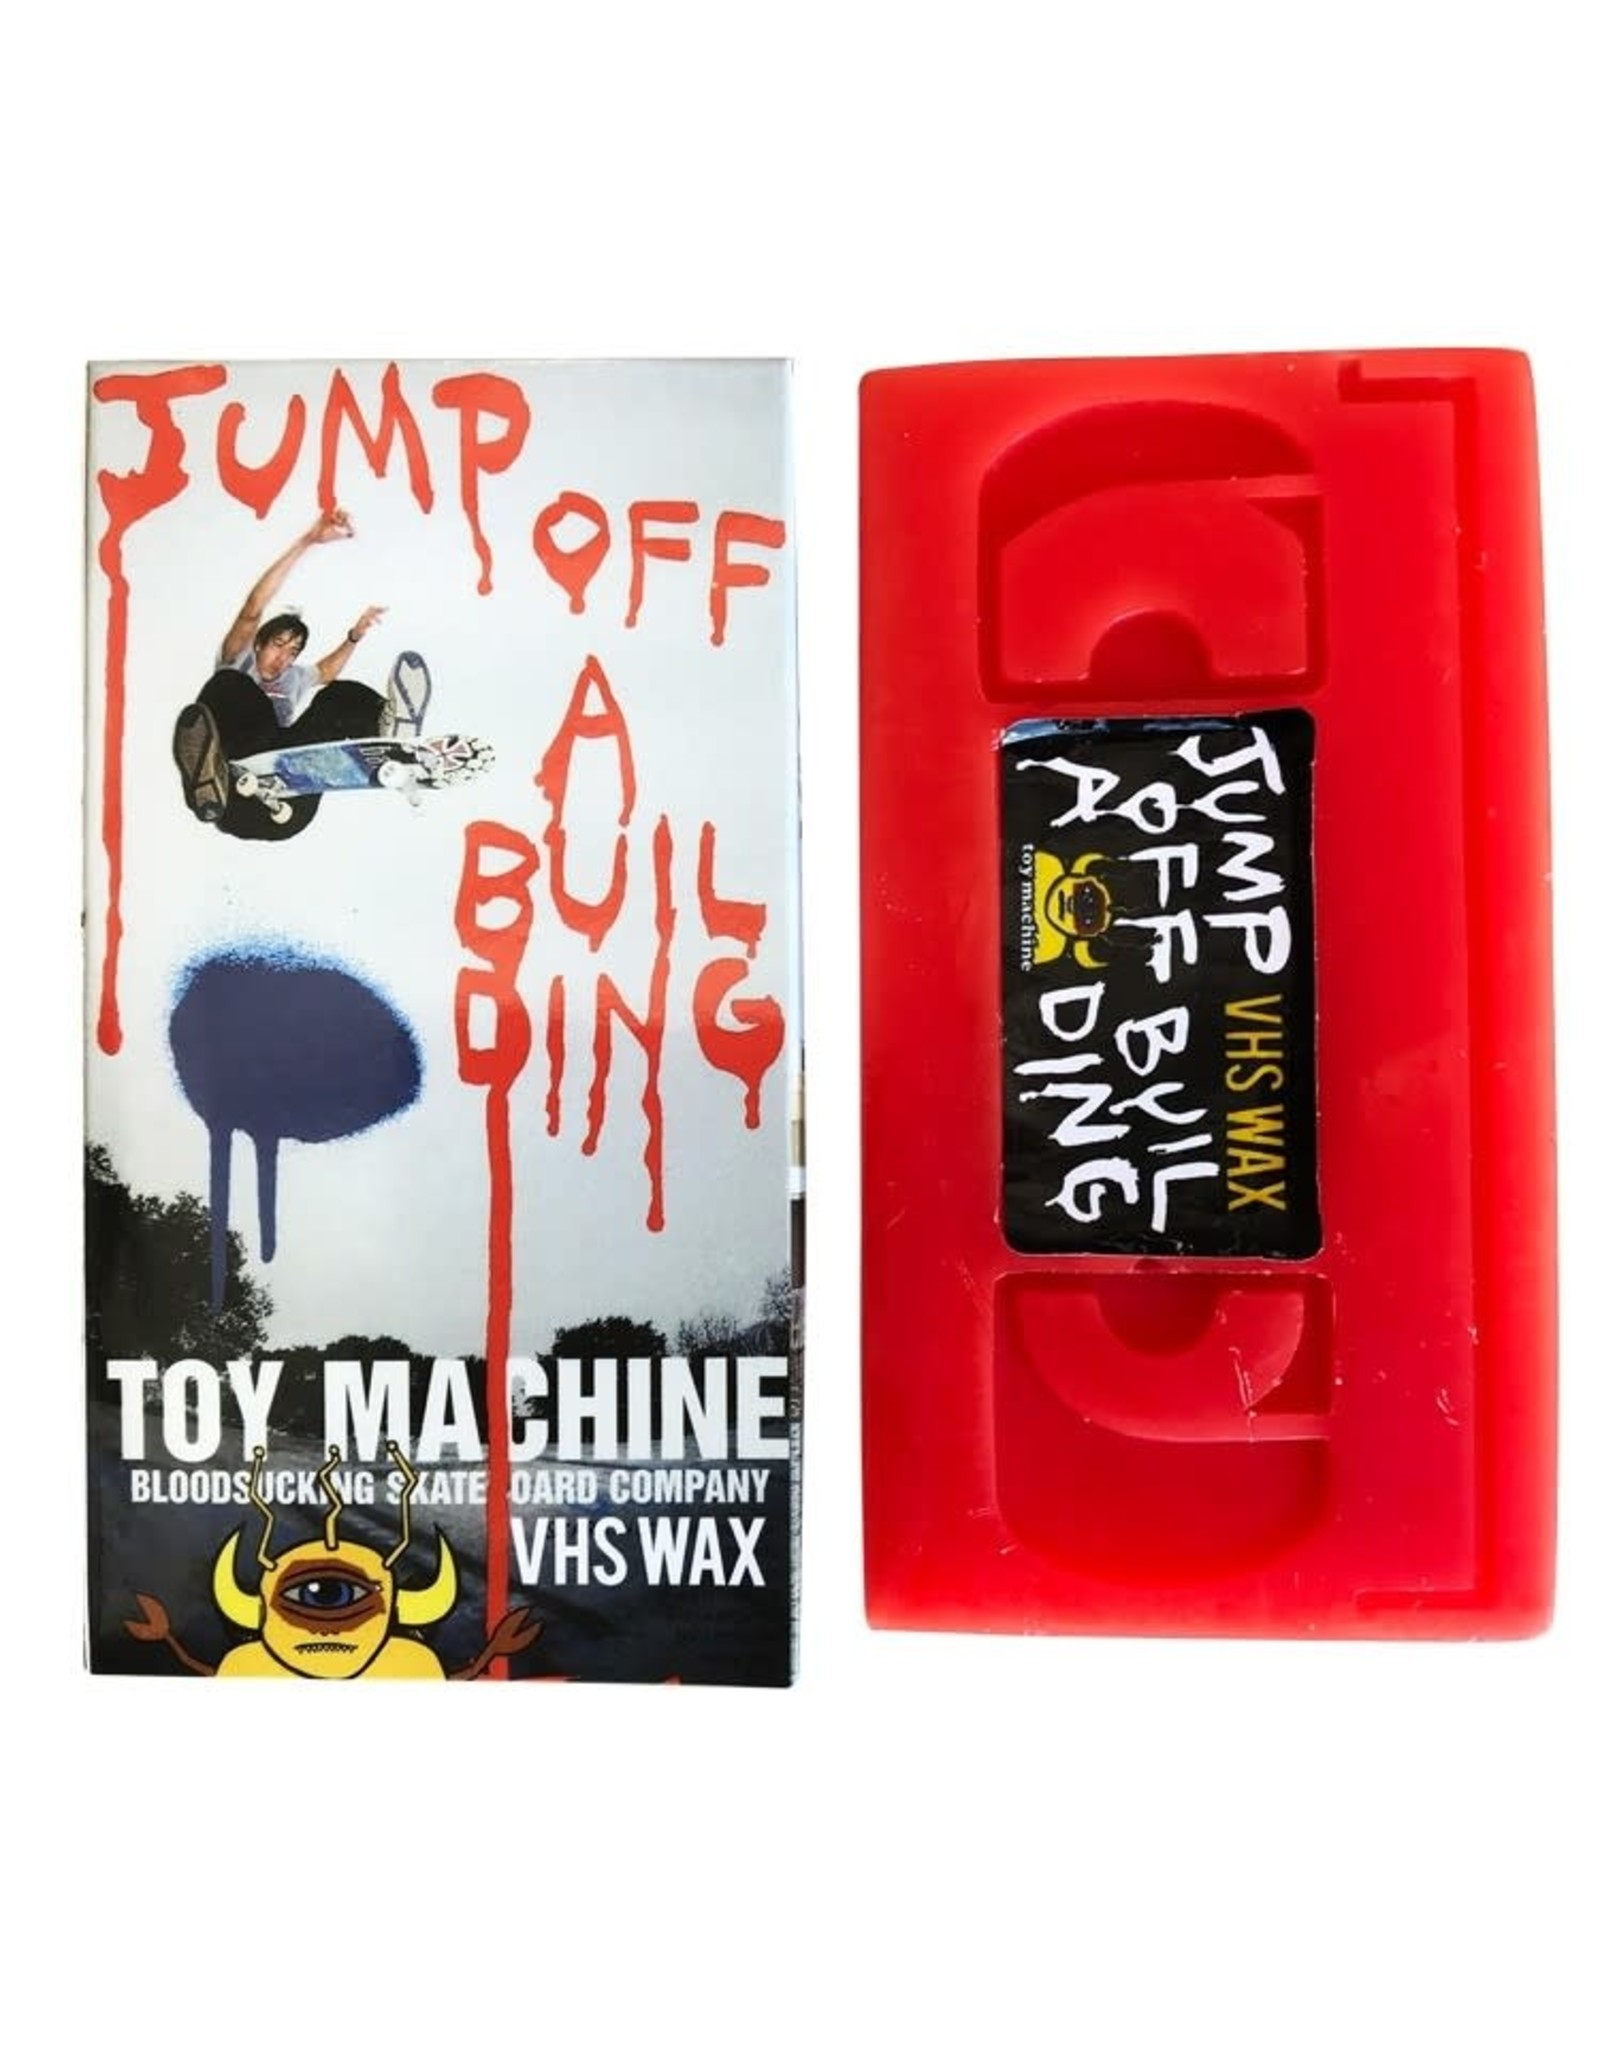 toy machine Toy Machine - Cire jump off a building